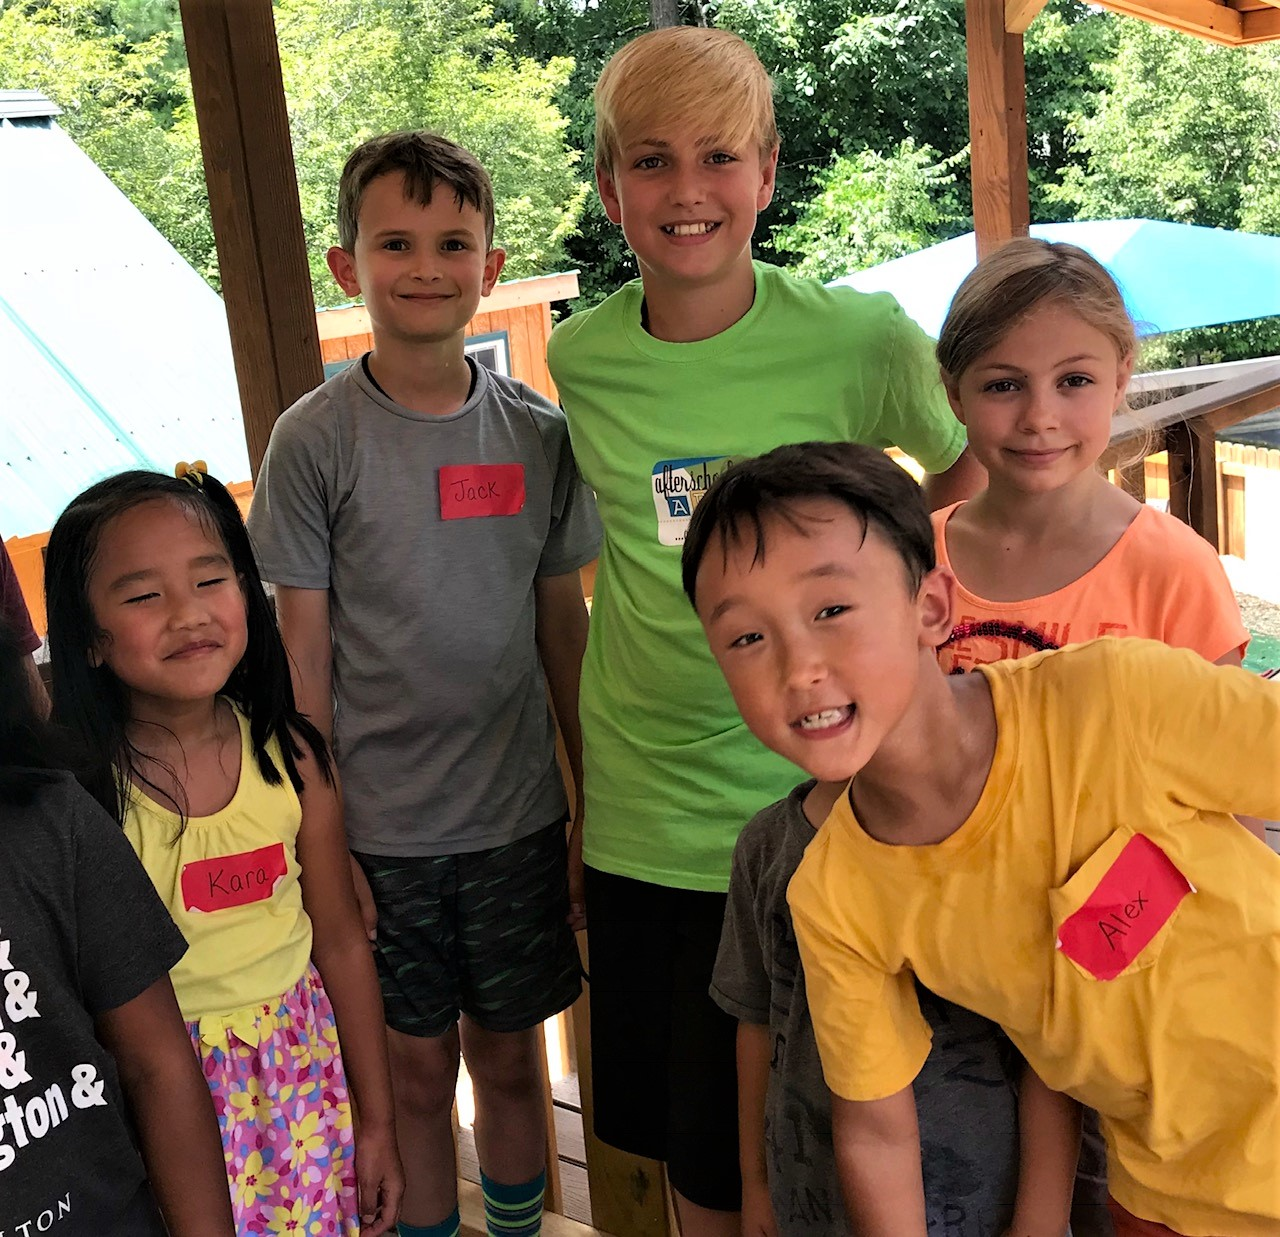 Mentor and campers on playground 2018.jpg